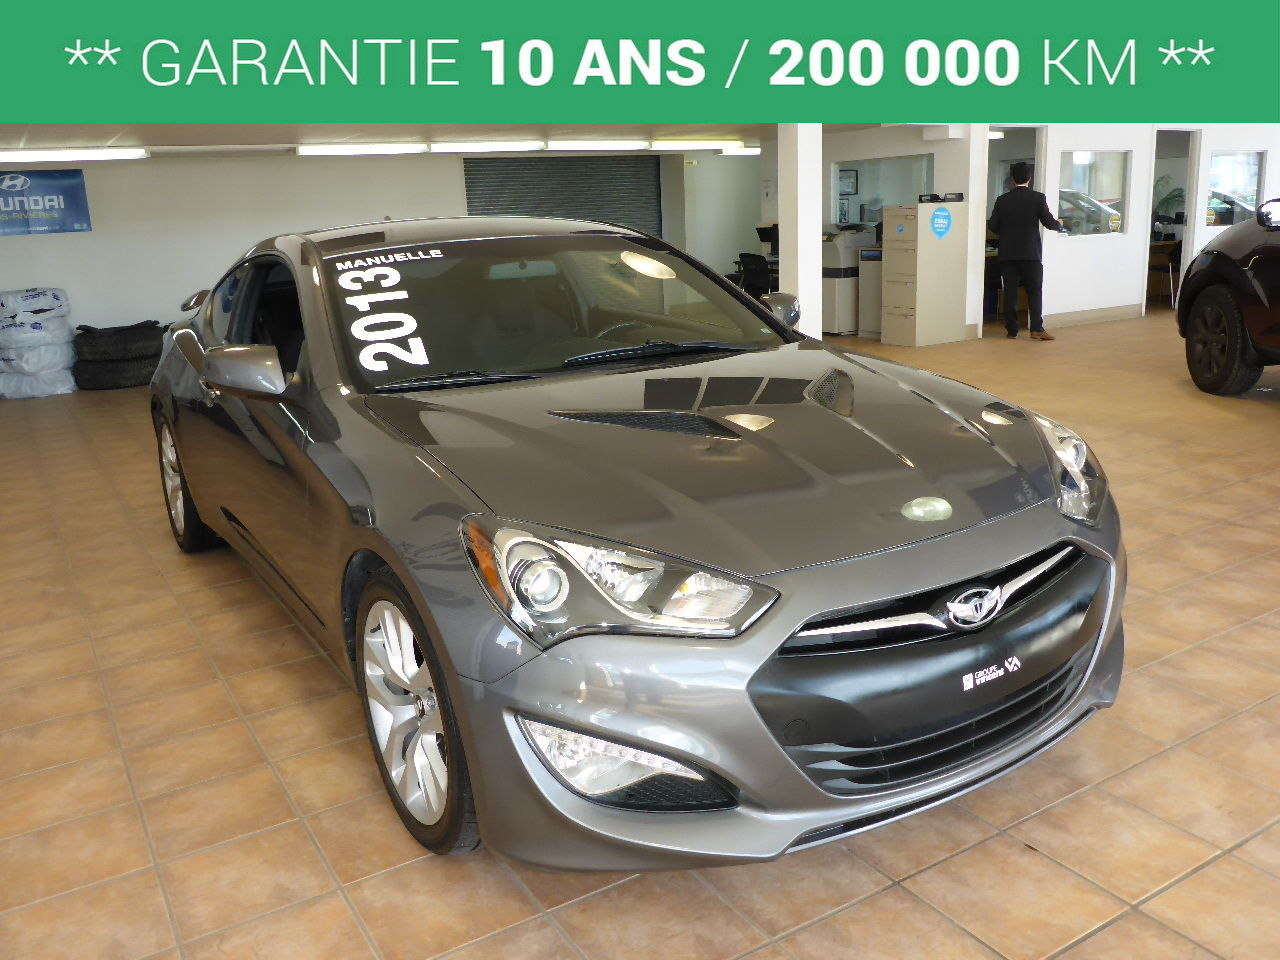 hyundai genesis coupe 2 0t garantie 10 ans 2013 d 39 occasion trois rivi res hyundai trois. Black Bedroom Furniture Sets. Home Design Ideas